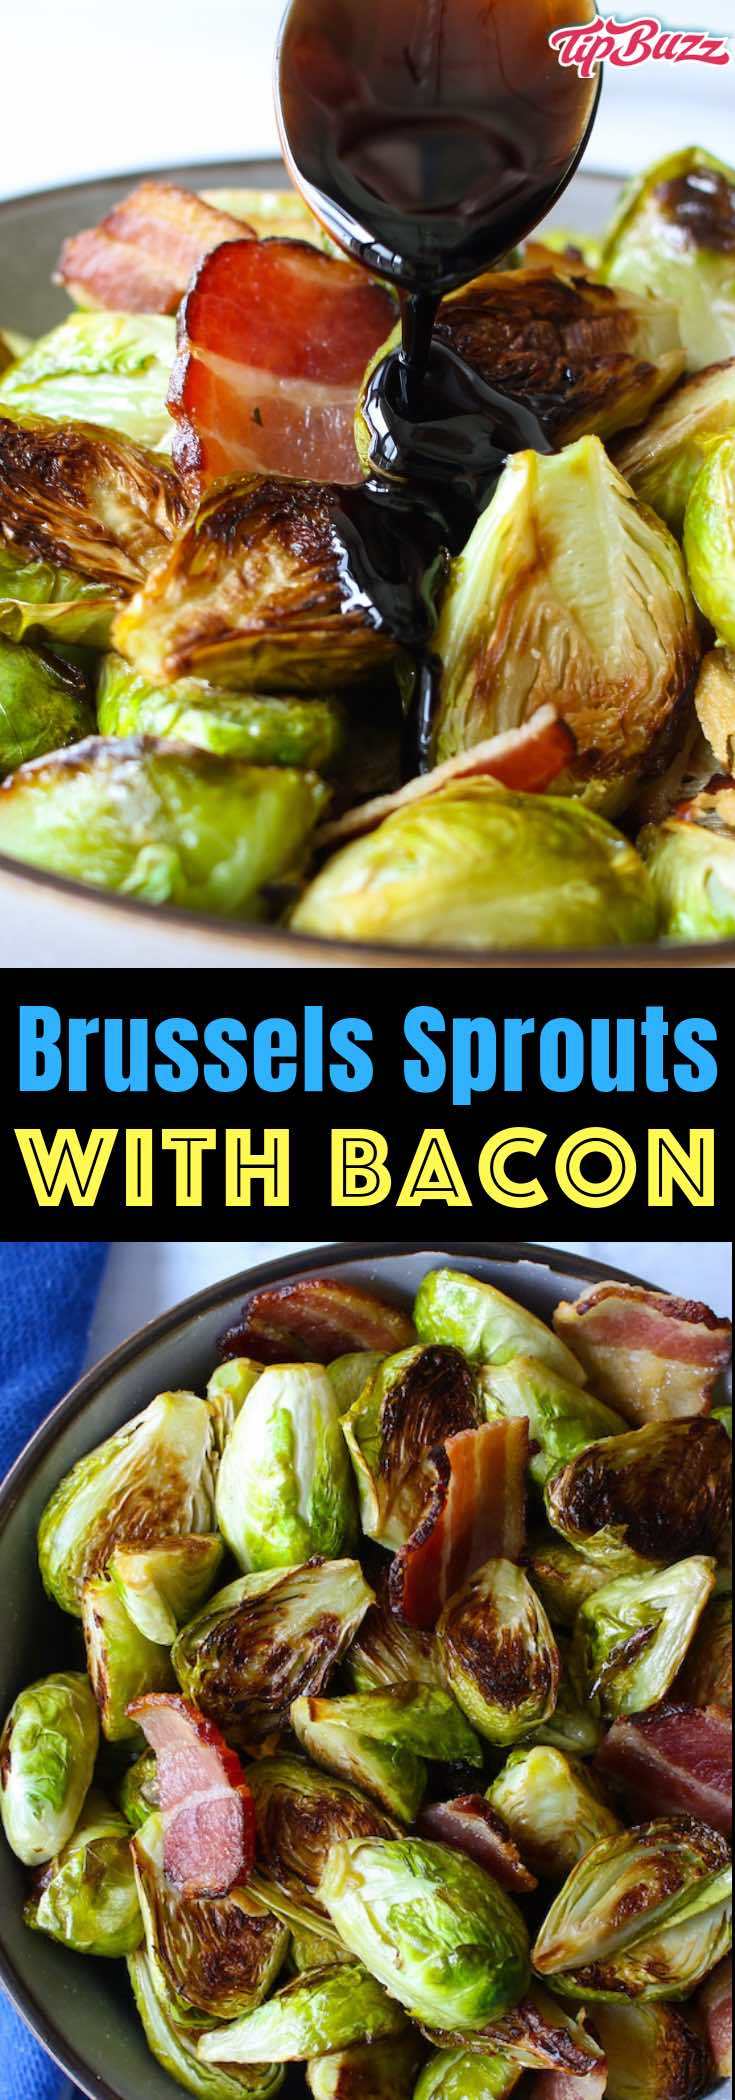 This Brussels Sprouts and Bacon recipe packs all the deliciousness of Brussels sprouts and bacon into a meal that's so easy to make!